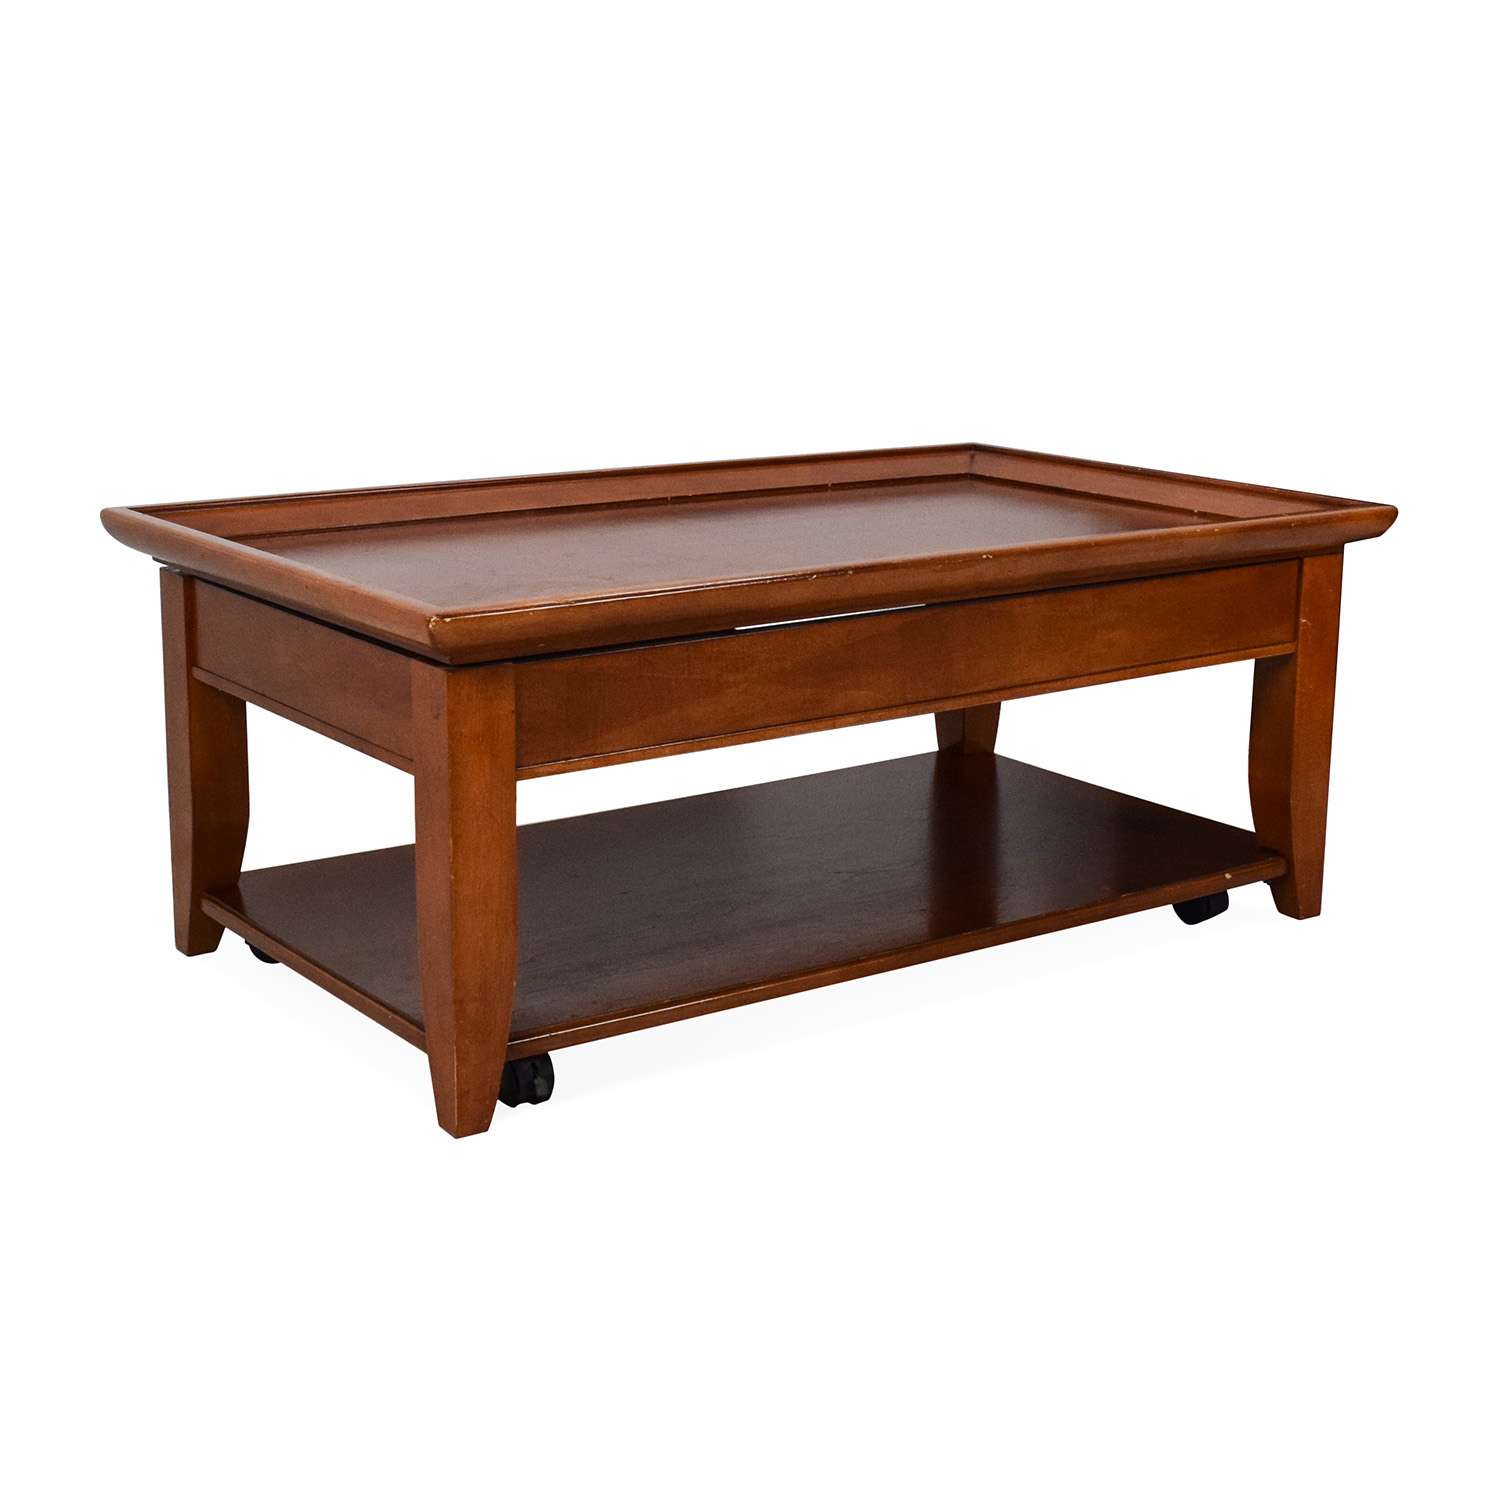 Vine lane sofa table sofa the honoroak for Sofa coffee table